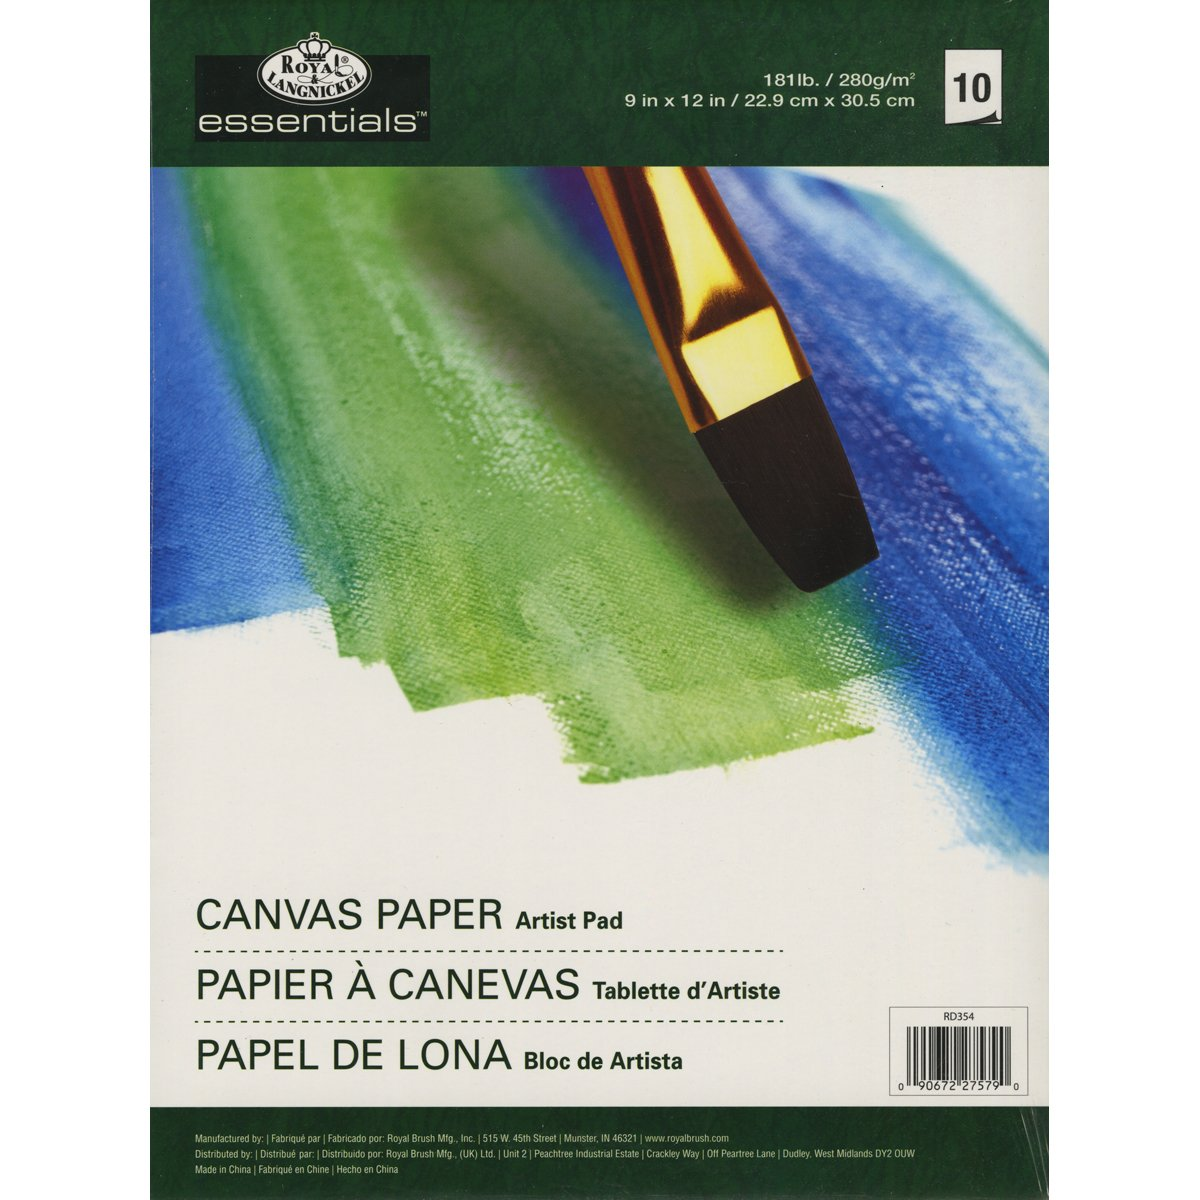 Royal Brush and Langnickel 10-Sheet Canvas Essentials Artist Paper Pad, 9-Inch by 12-Inch Notions - In Network RD35-4